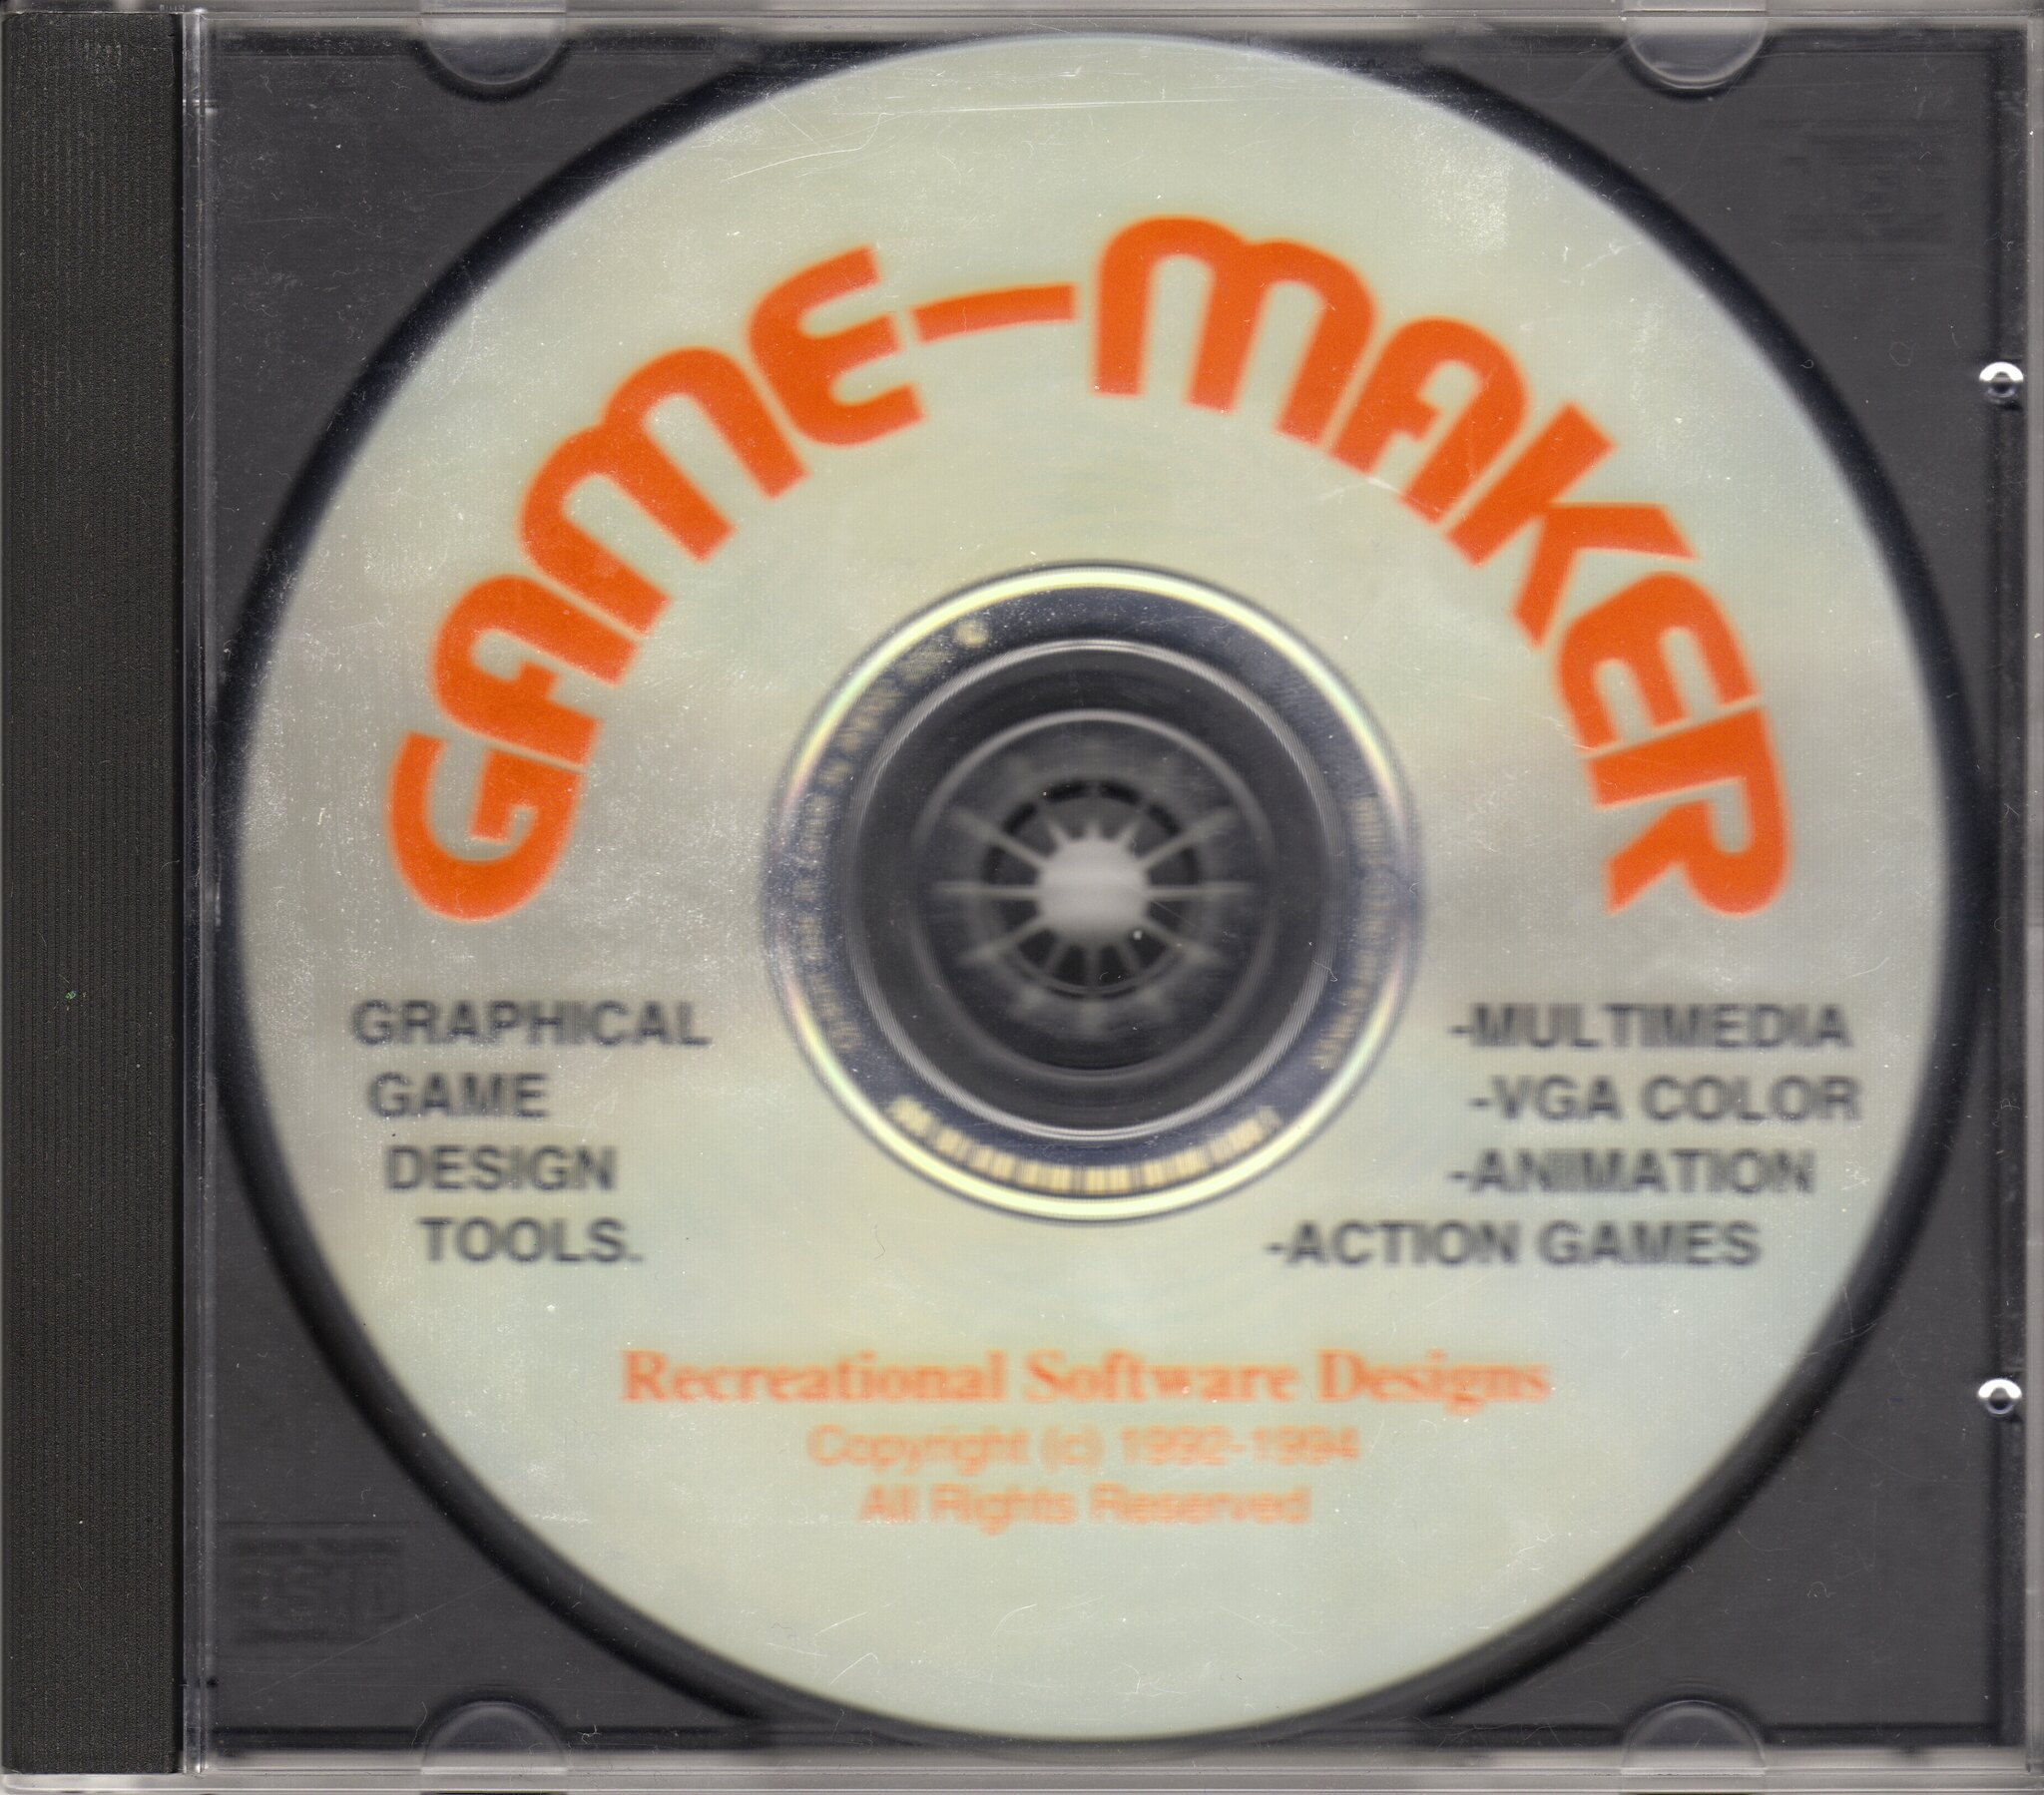 Graphical game design tools. Multimedia! VGA color! Animation! Action games!